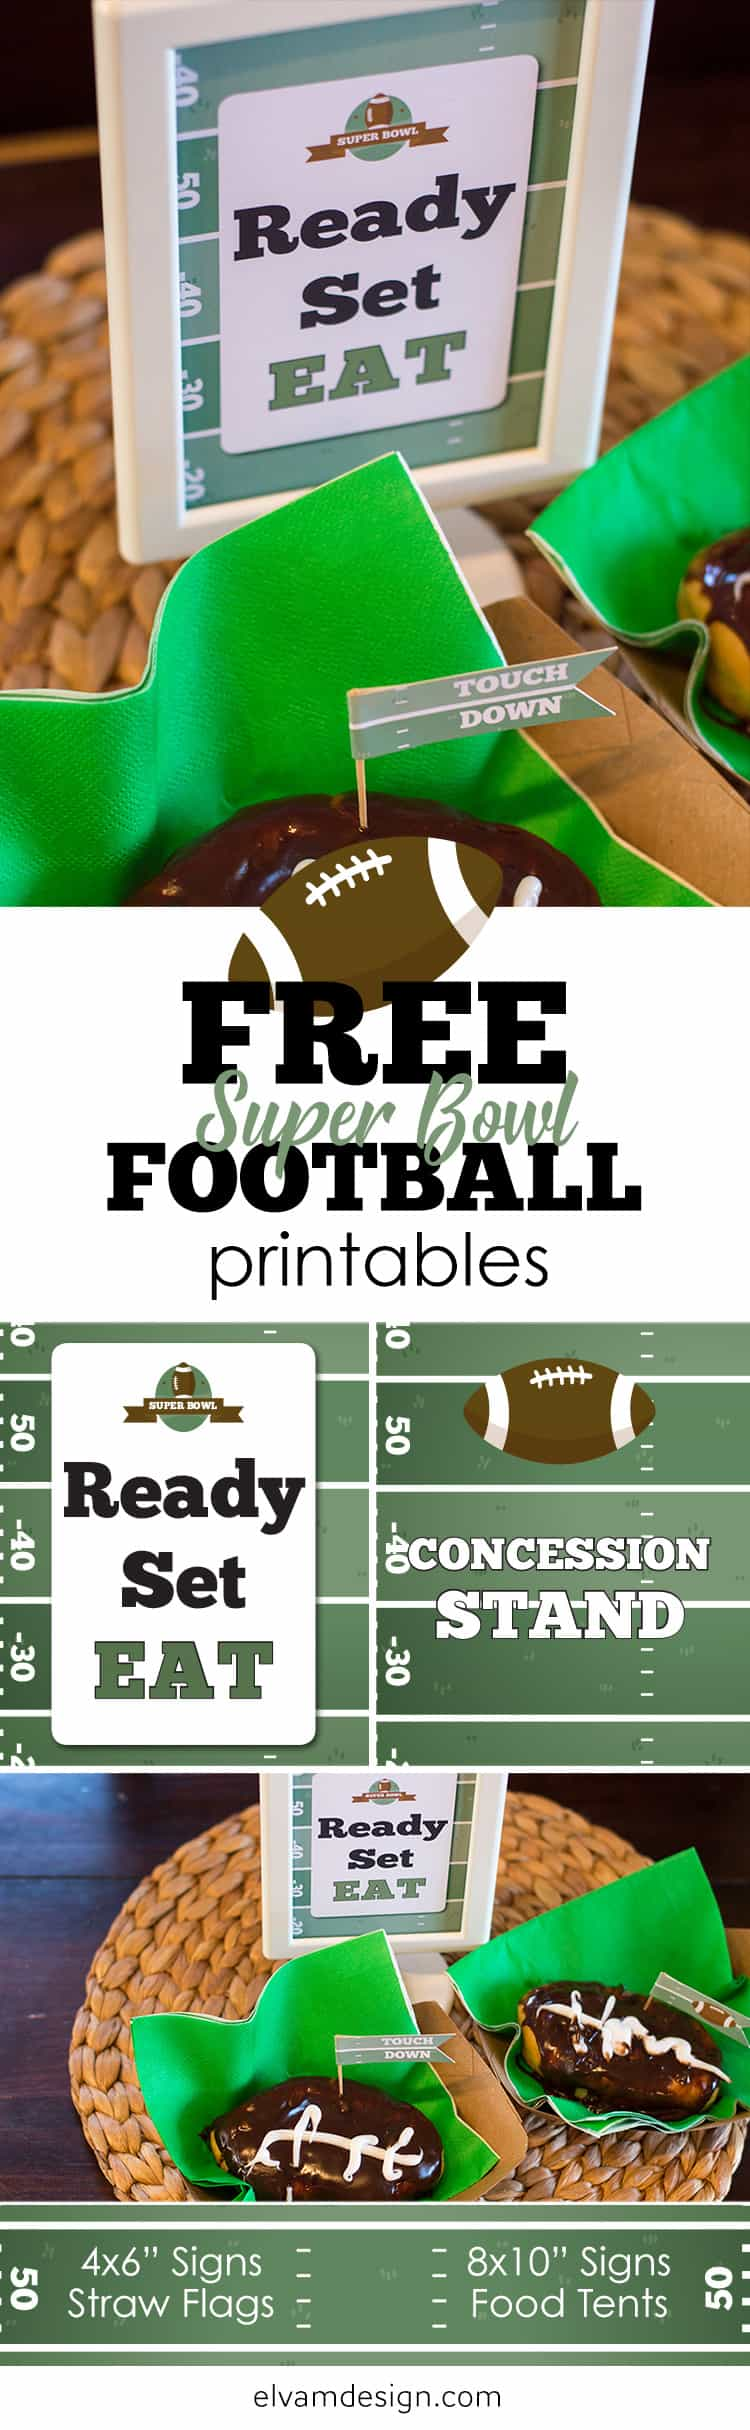 Free Football Printables from Elva M Design Studio